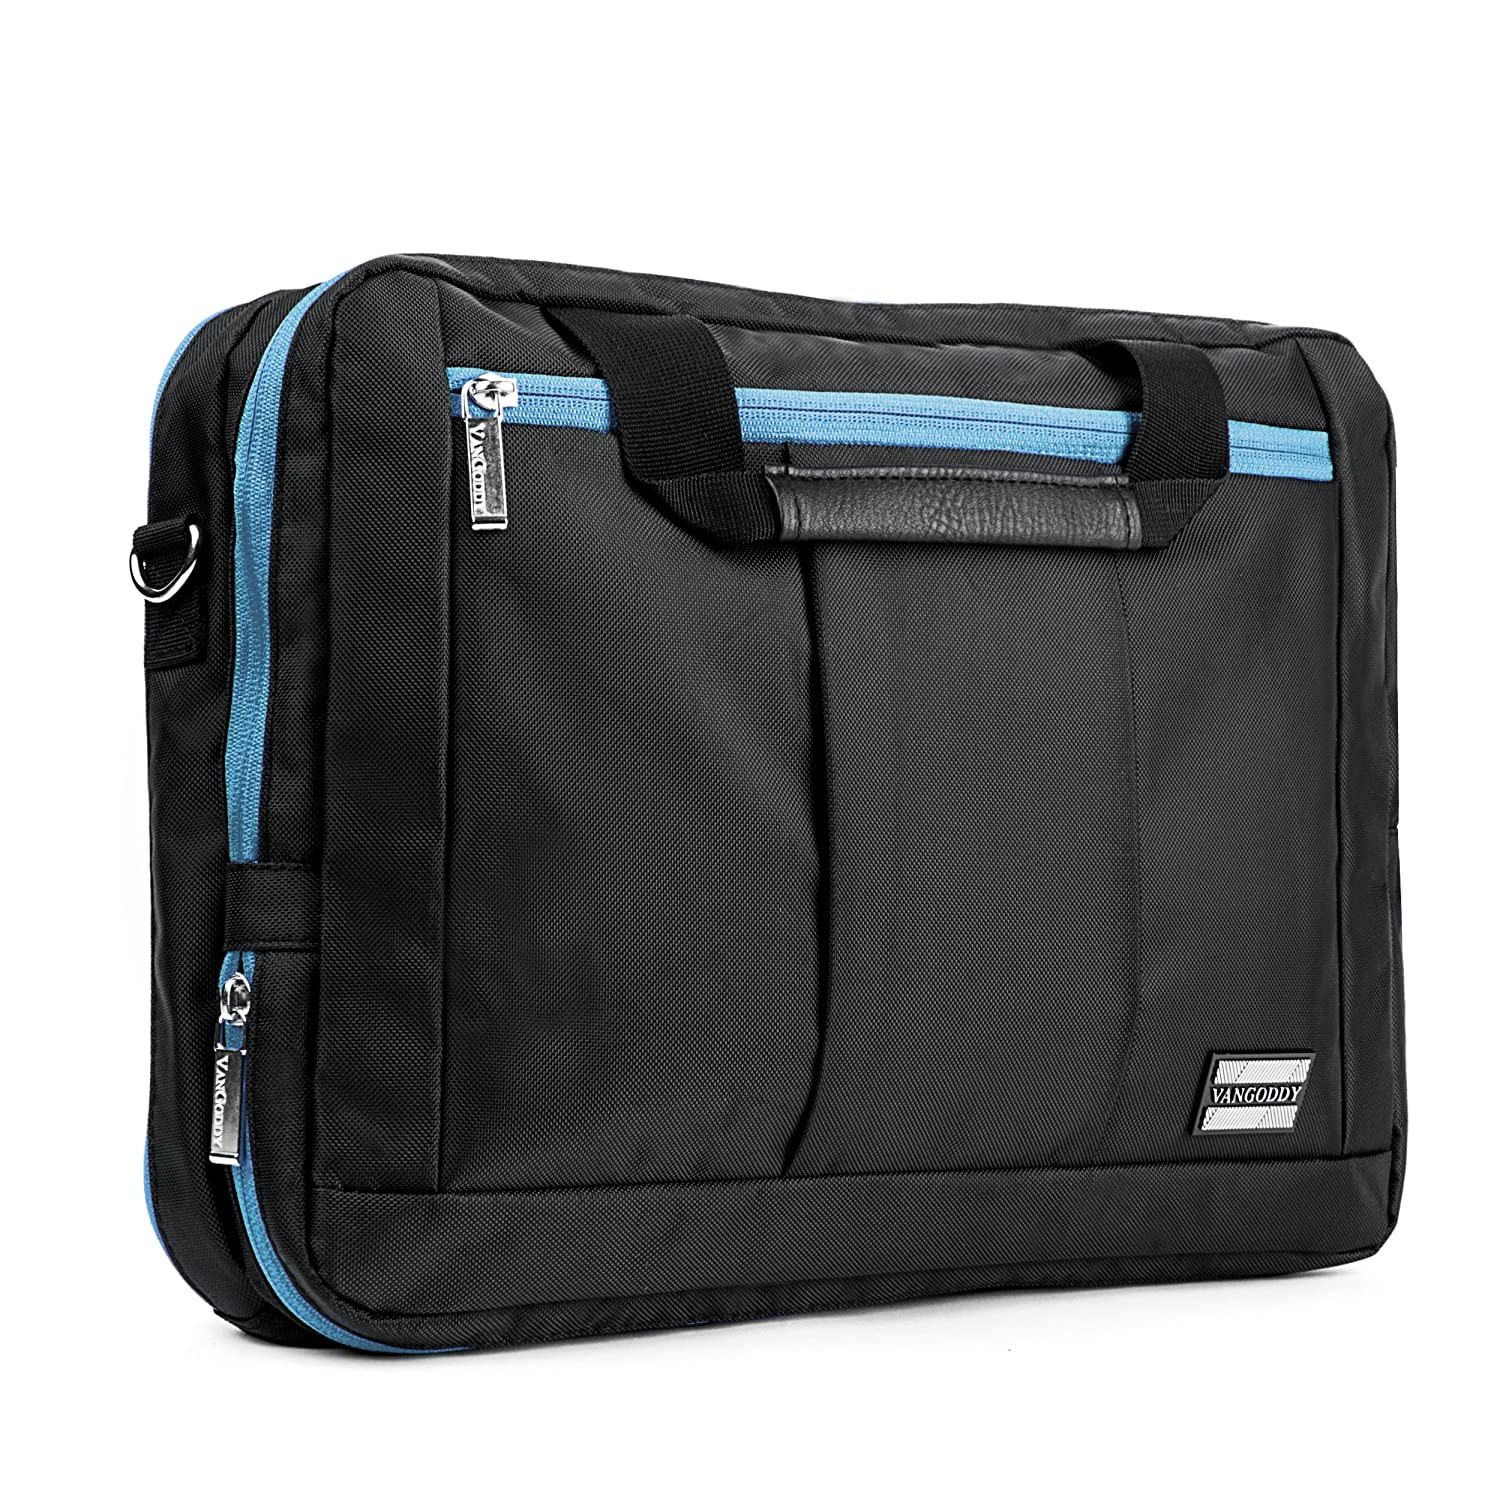 Amazon.com: VanGoddy El Prado Aqua Trim Hybrid 3-in-1 Bag ...